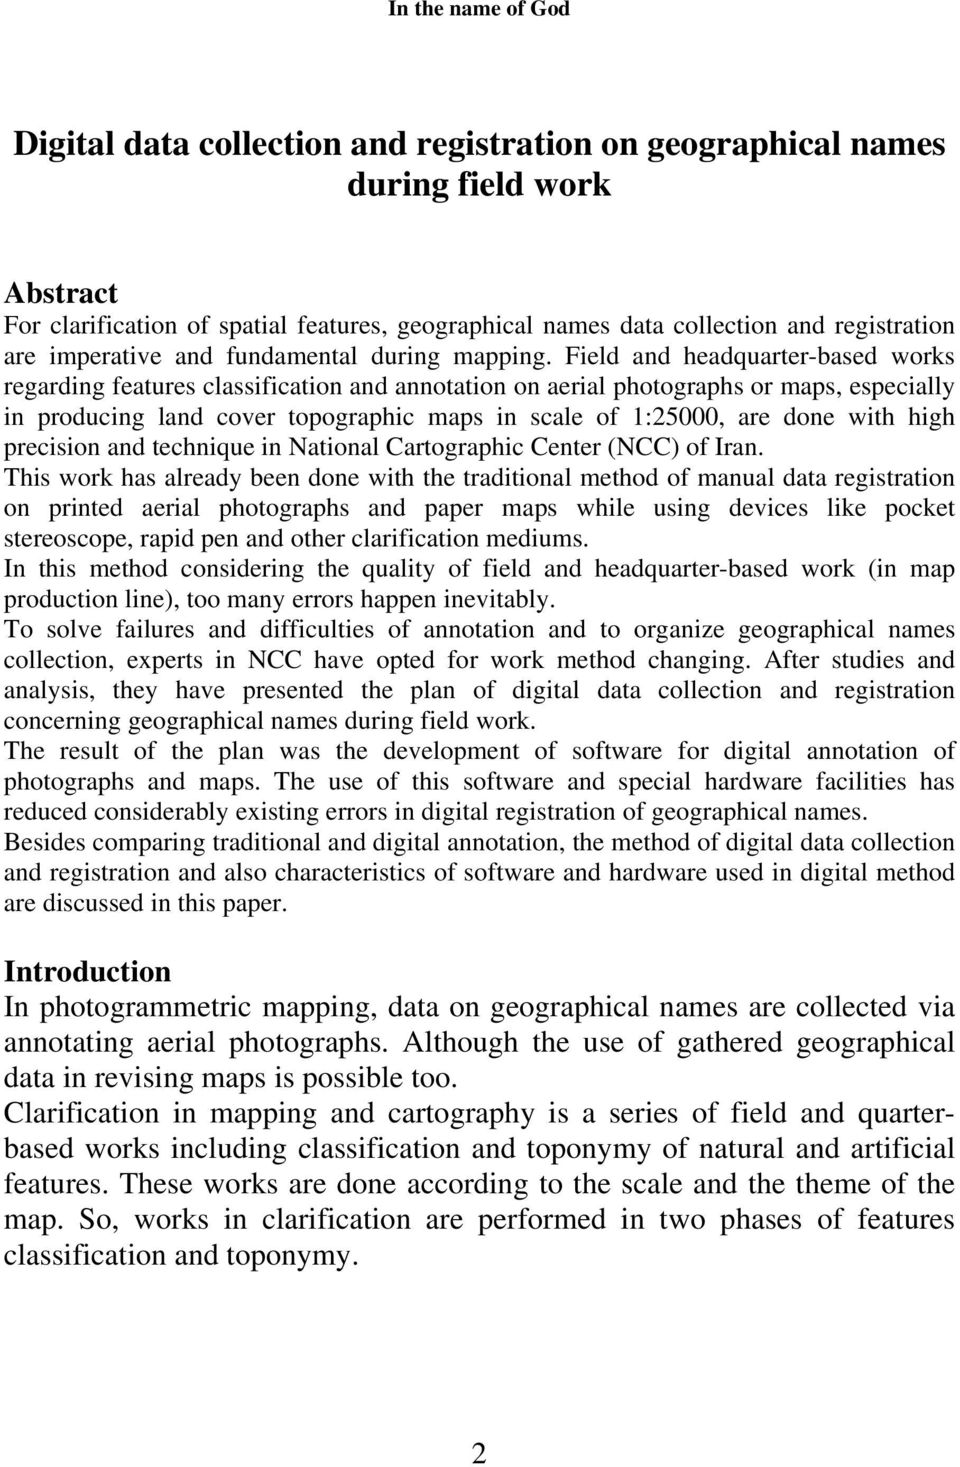 Field and headquarter-based works regarding features classification and annotation on aerial photographs or maps, especially in producing land cover topographic maps in scale of 1:25000, are done